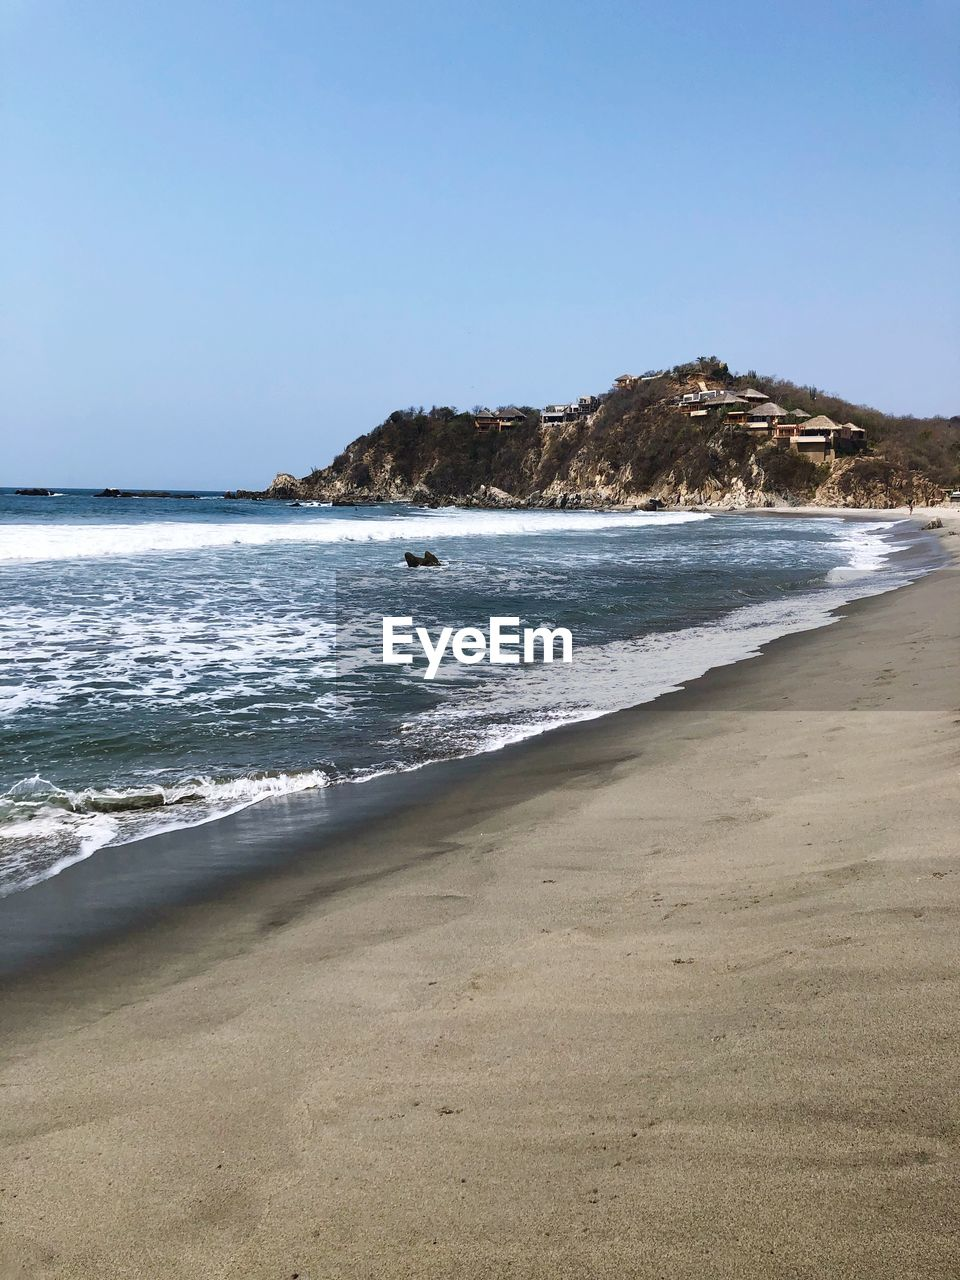 sea, water, land, beach, sky, scenics - nature, beauty in nature, clear sky, wave, nature, motion, sand, copy space, tranquility, tranquil scene, day, horizon, sport, horizon over water, no people, outdoors